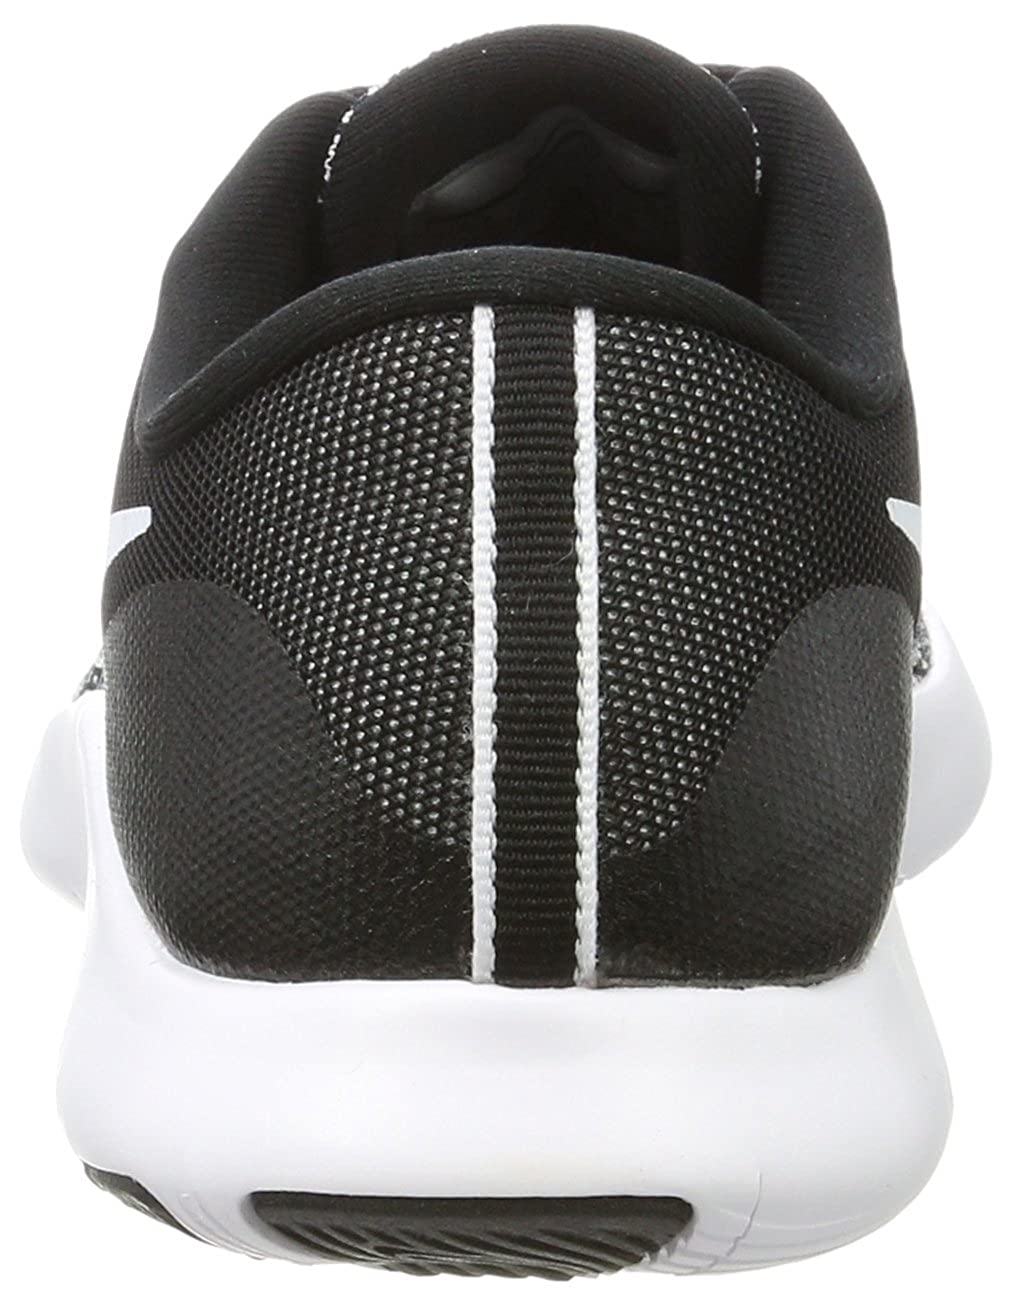 Amazon.com | Nike Mens Flex Contact Running Shoes (Black White Size 10 D(M) US) | Road Running